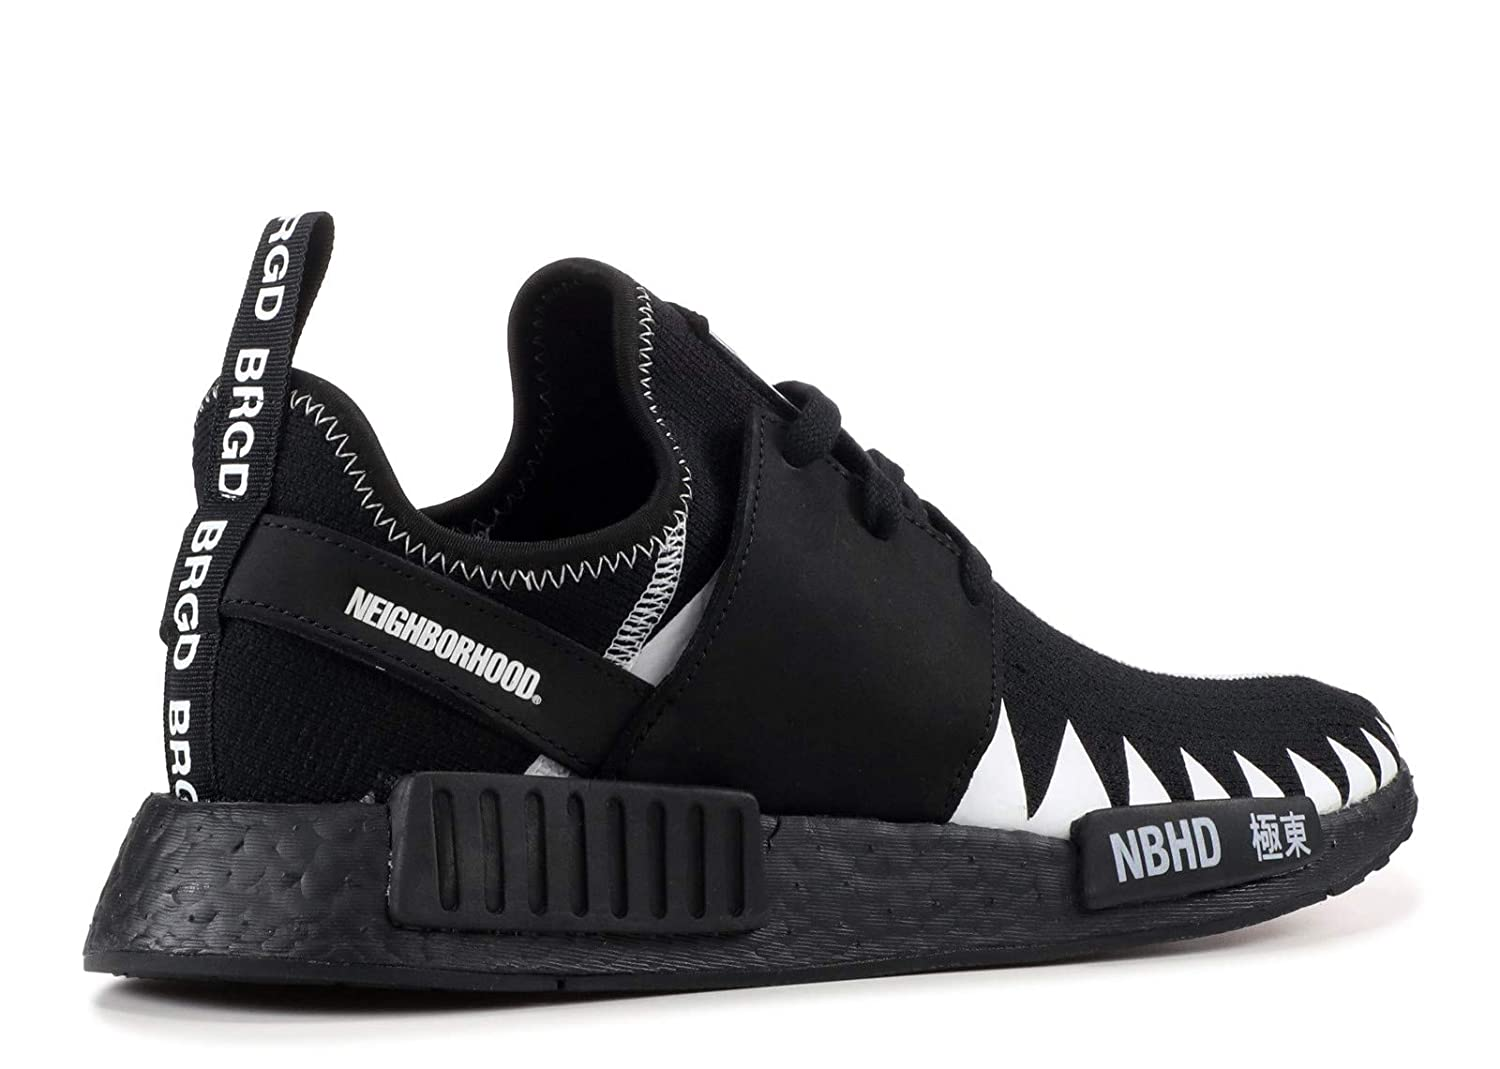 online retailer 678ce 37e3e Adidas NMD R1 PK 'Neighborhood' - DA8835: Amazon.ca: Shoes ...